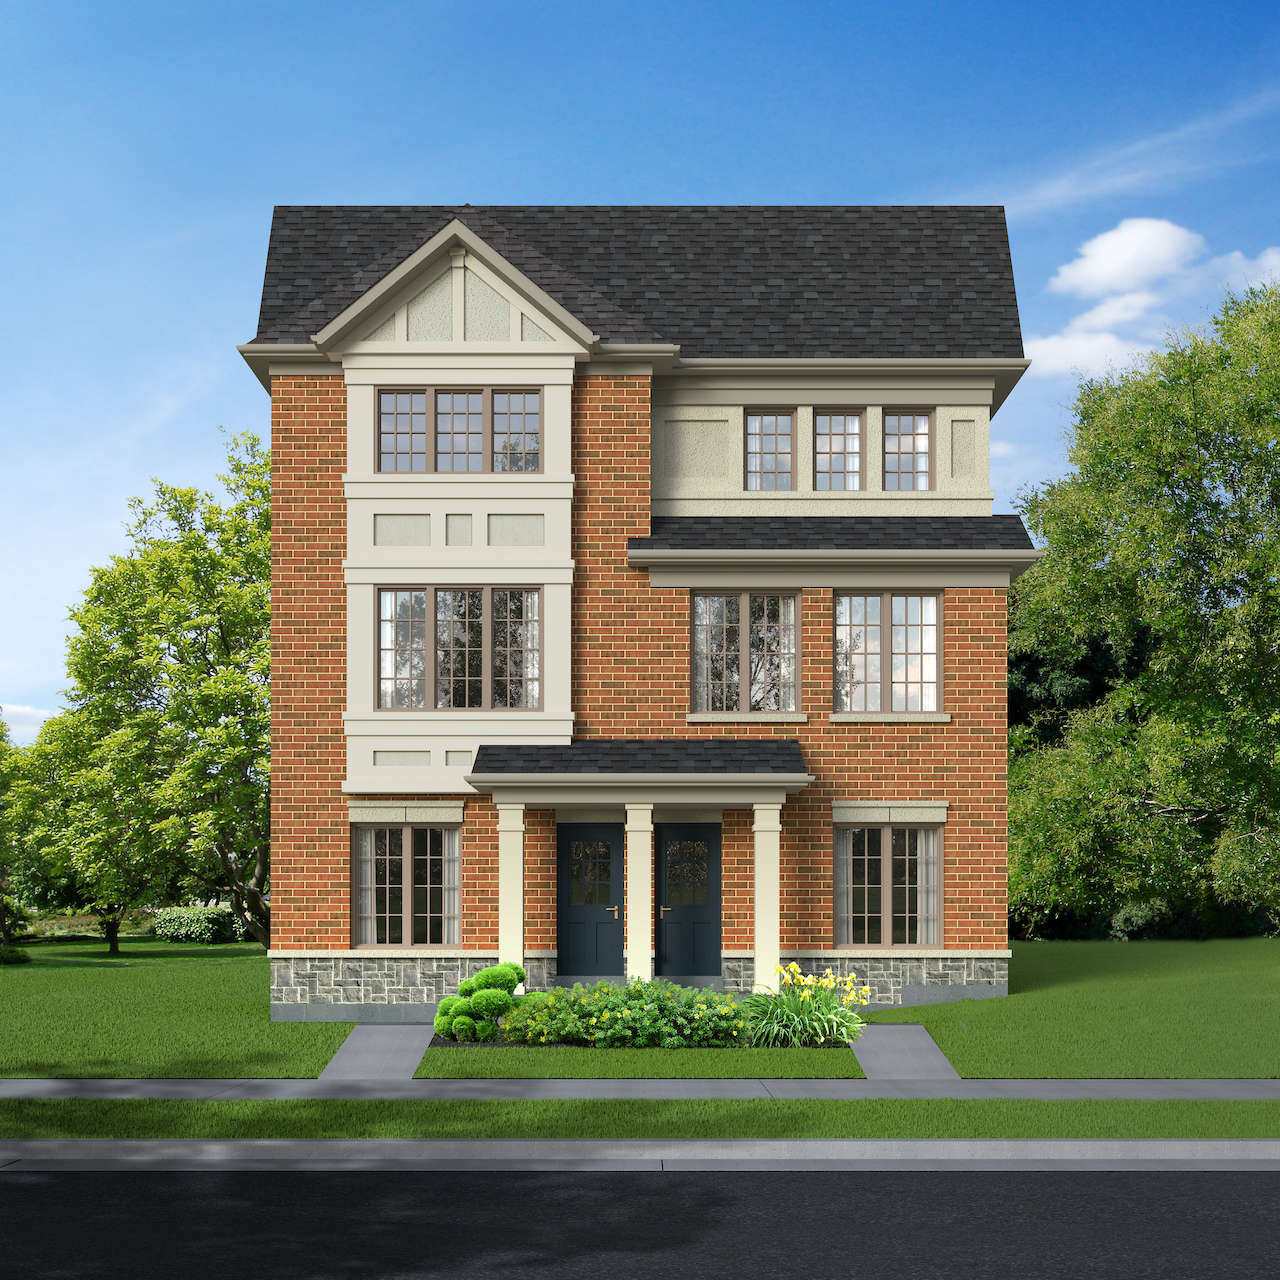 Exterior rendering of The Village at Highland Creek Semis 17-18